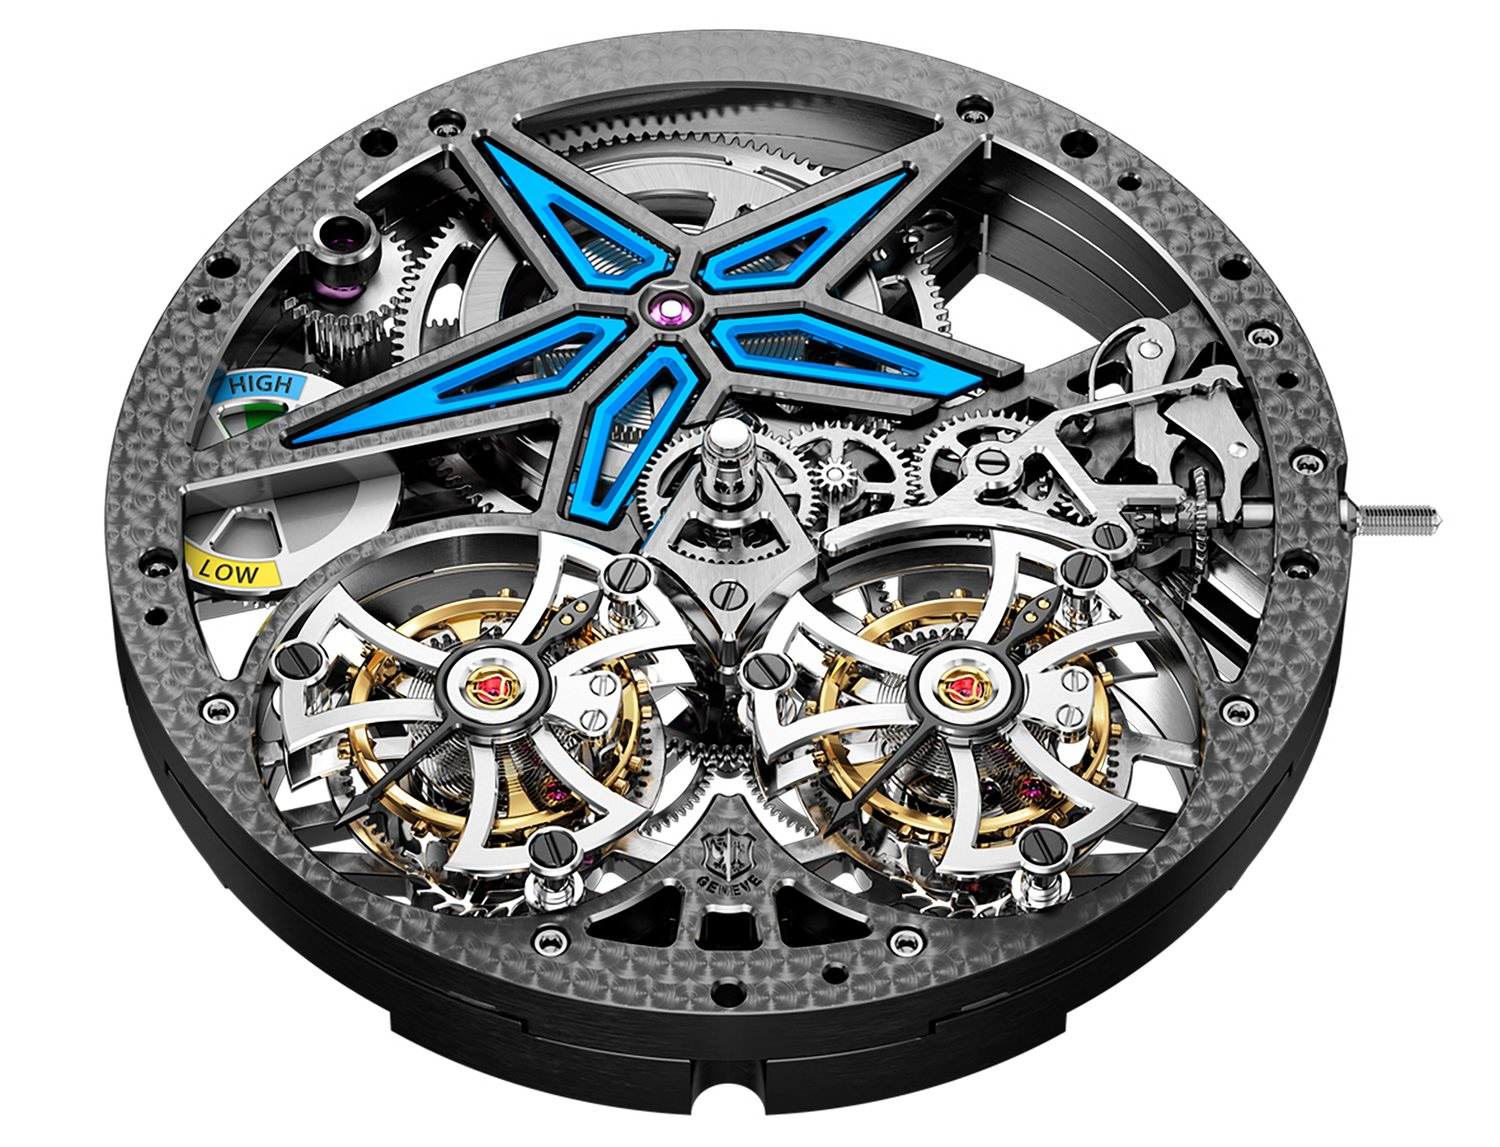 roger-dubuis-excalibur-spider-pirelli-double-flying-tourbillon